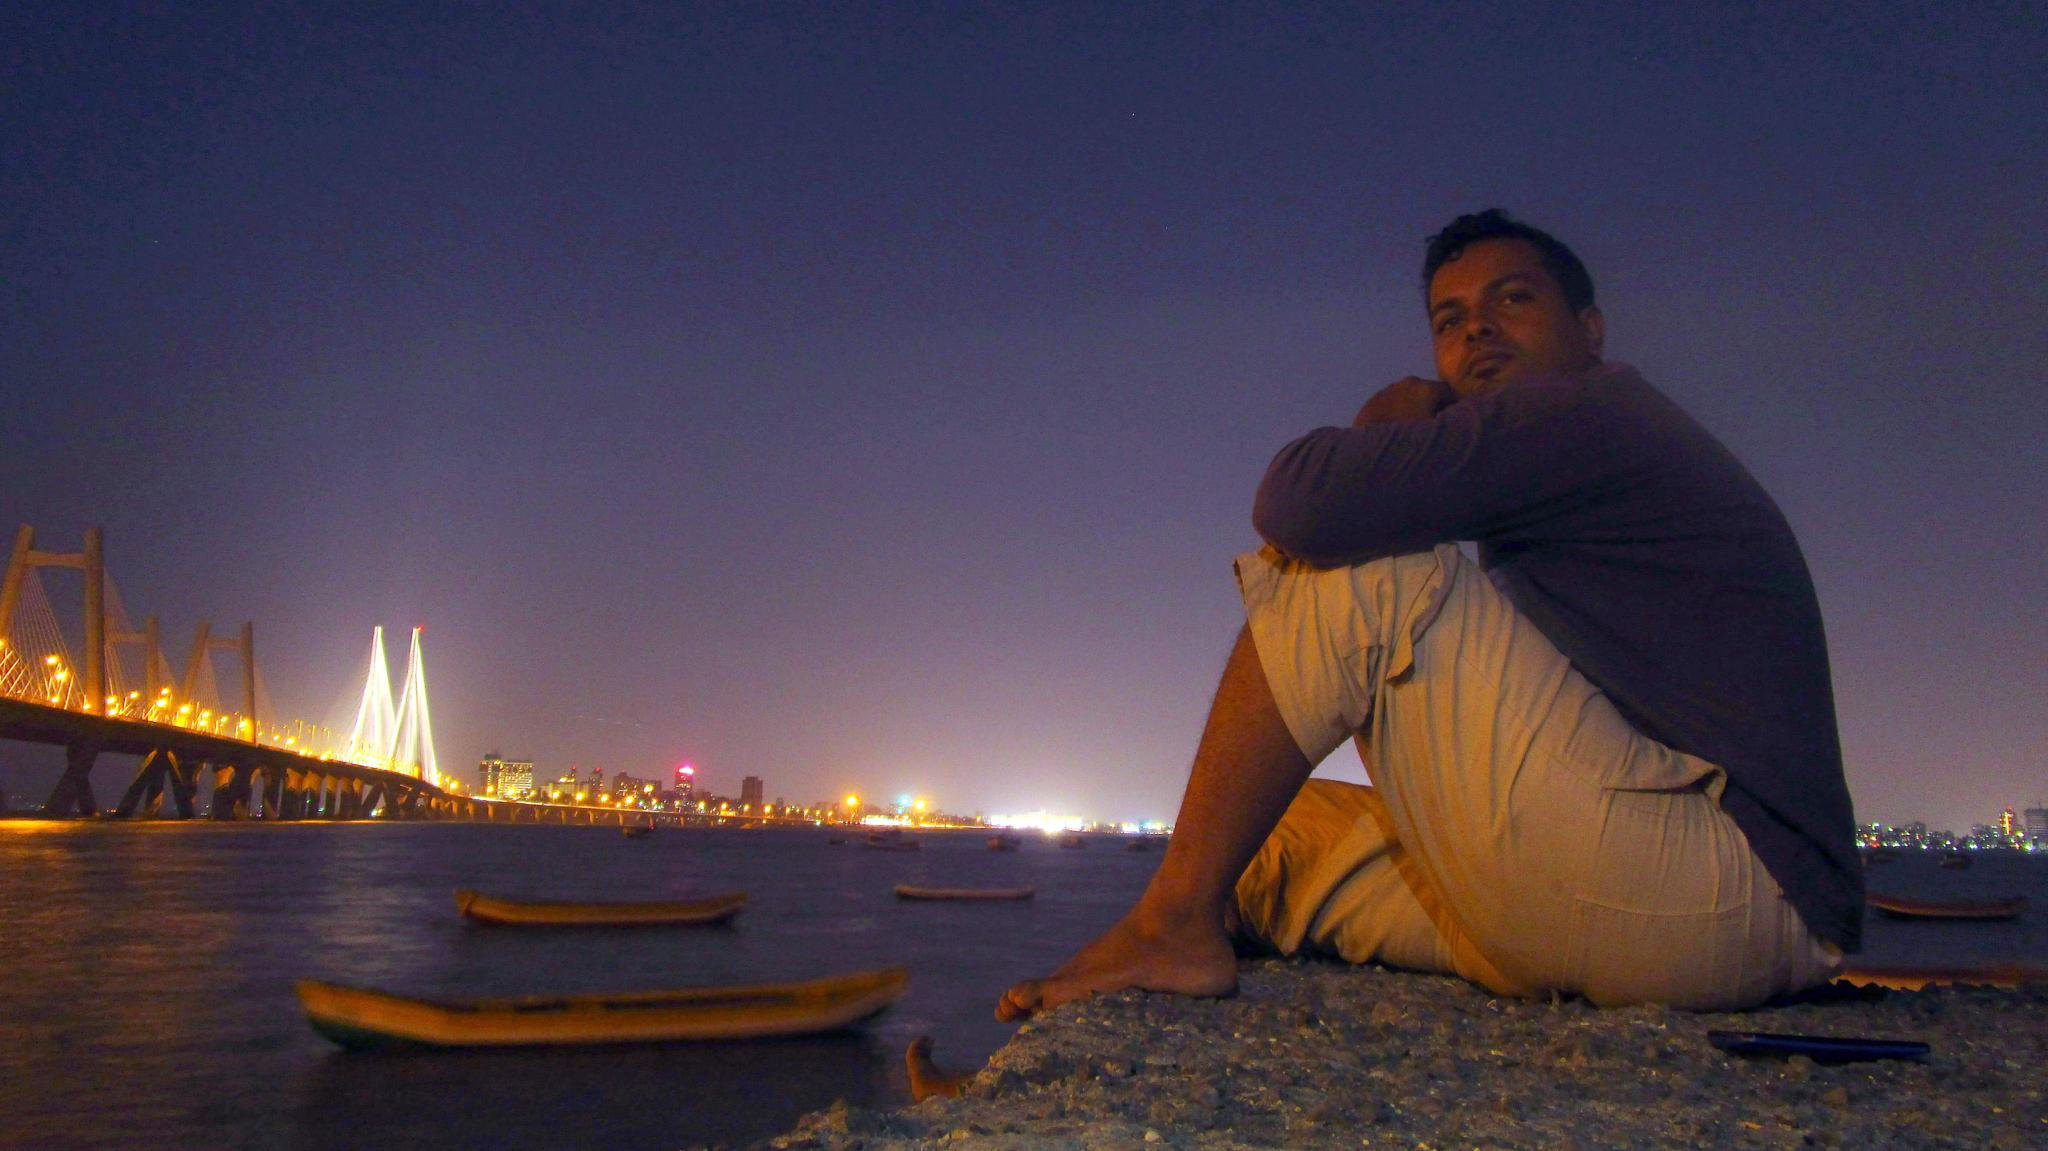 Me and Low angle by Nishikant Patil